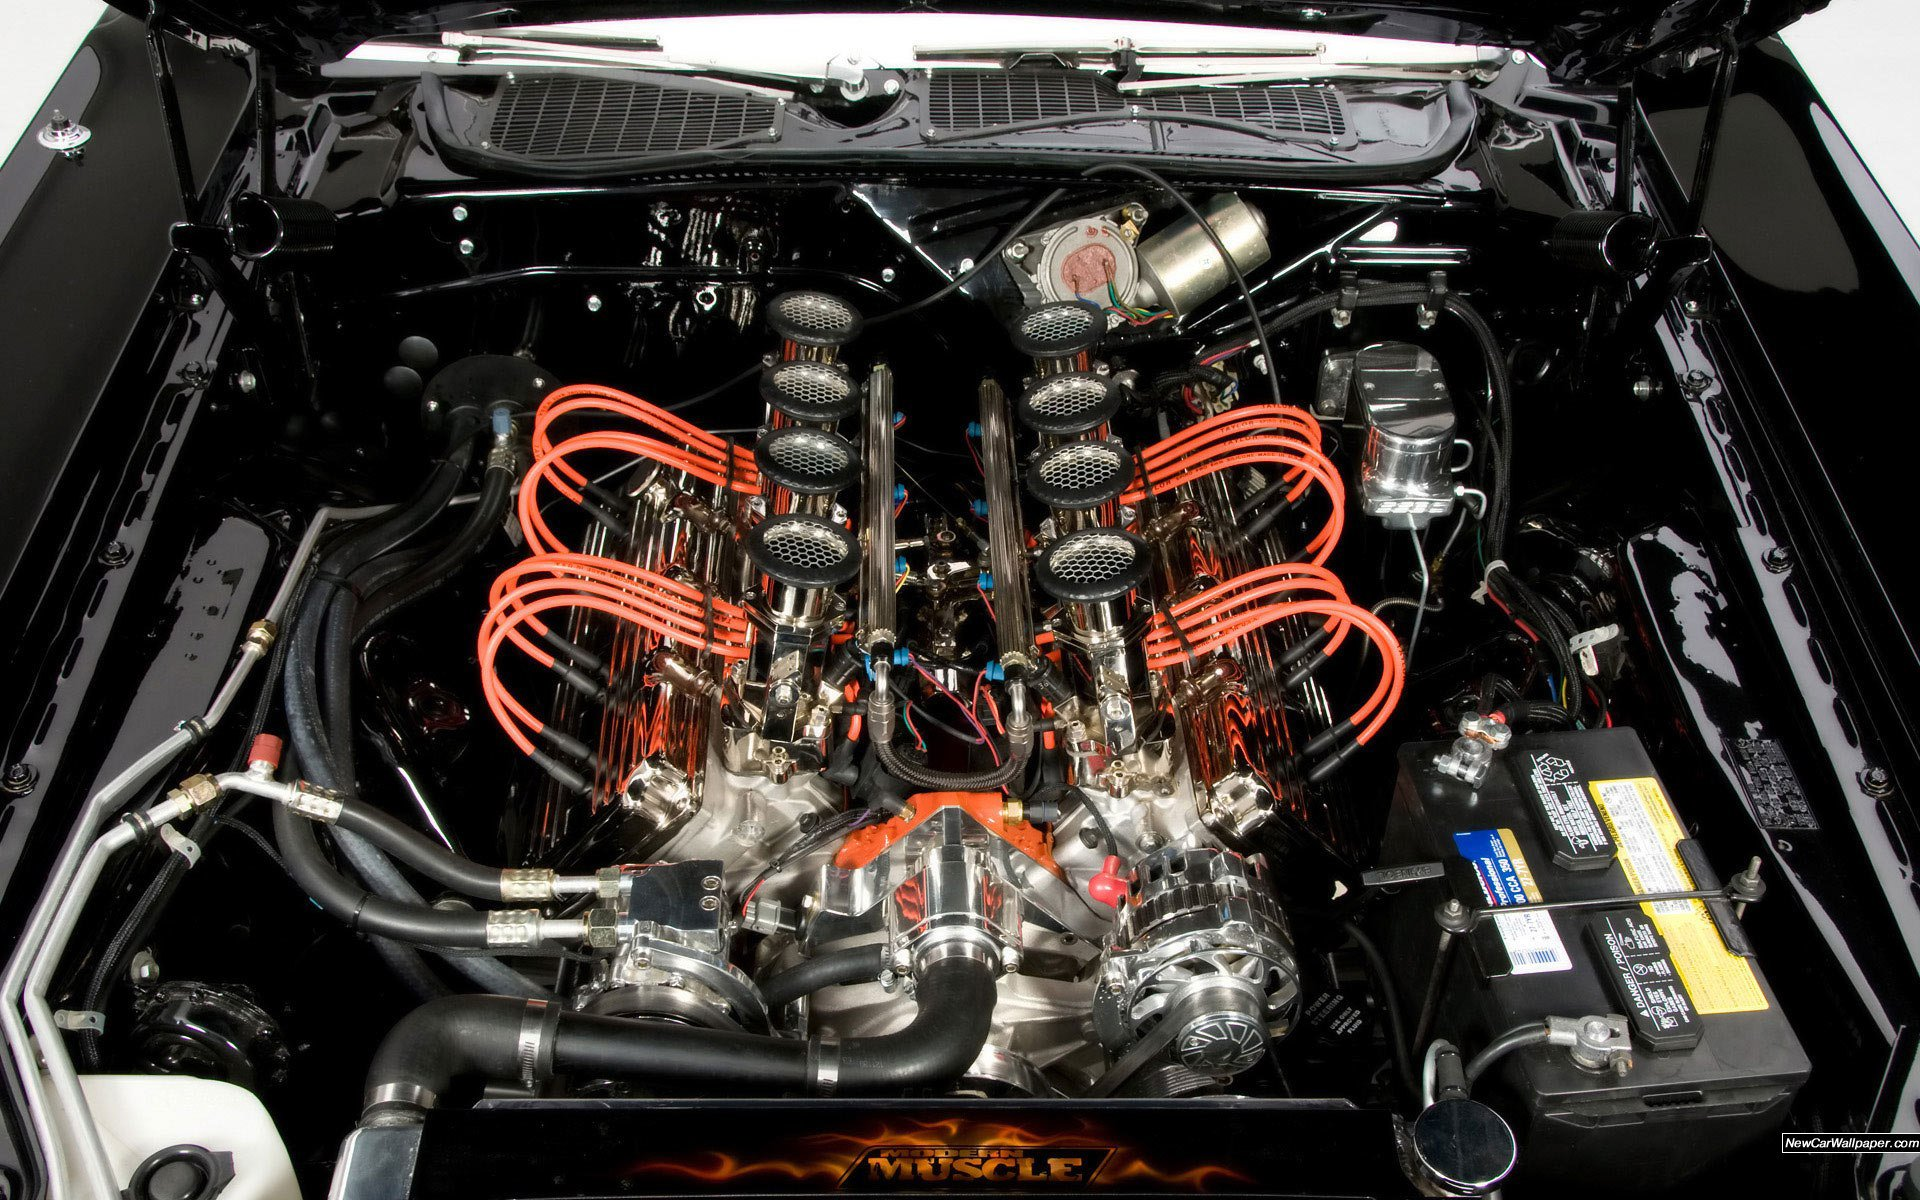 Pics Of Cars Wallpapers Dodge Challenger Engine Hot Rod Muscle Cars Wallpaper